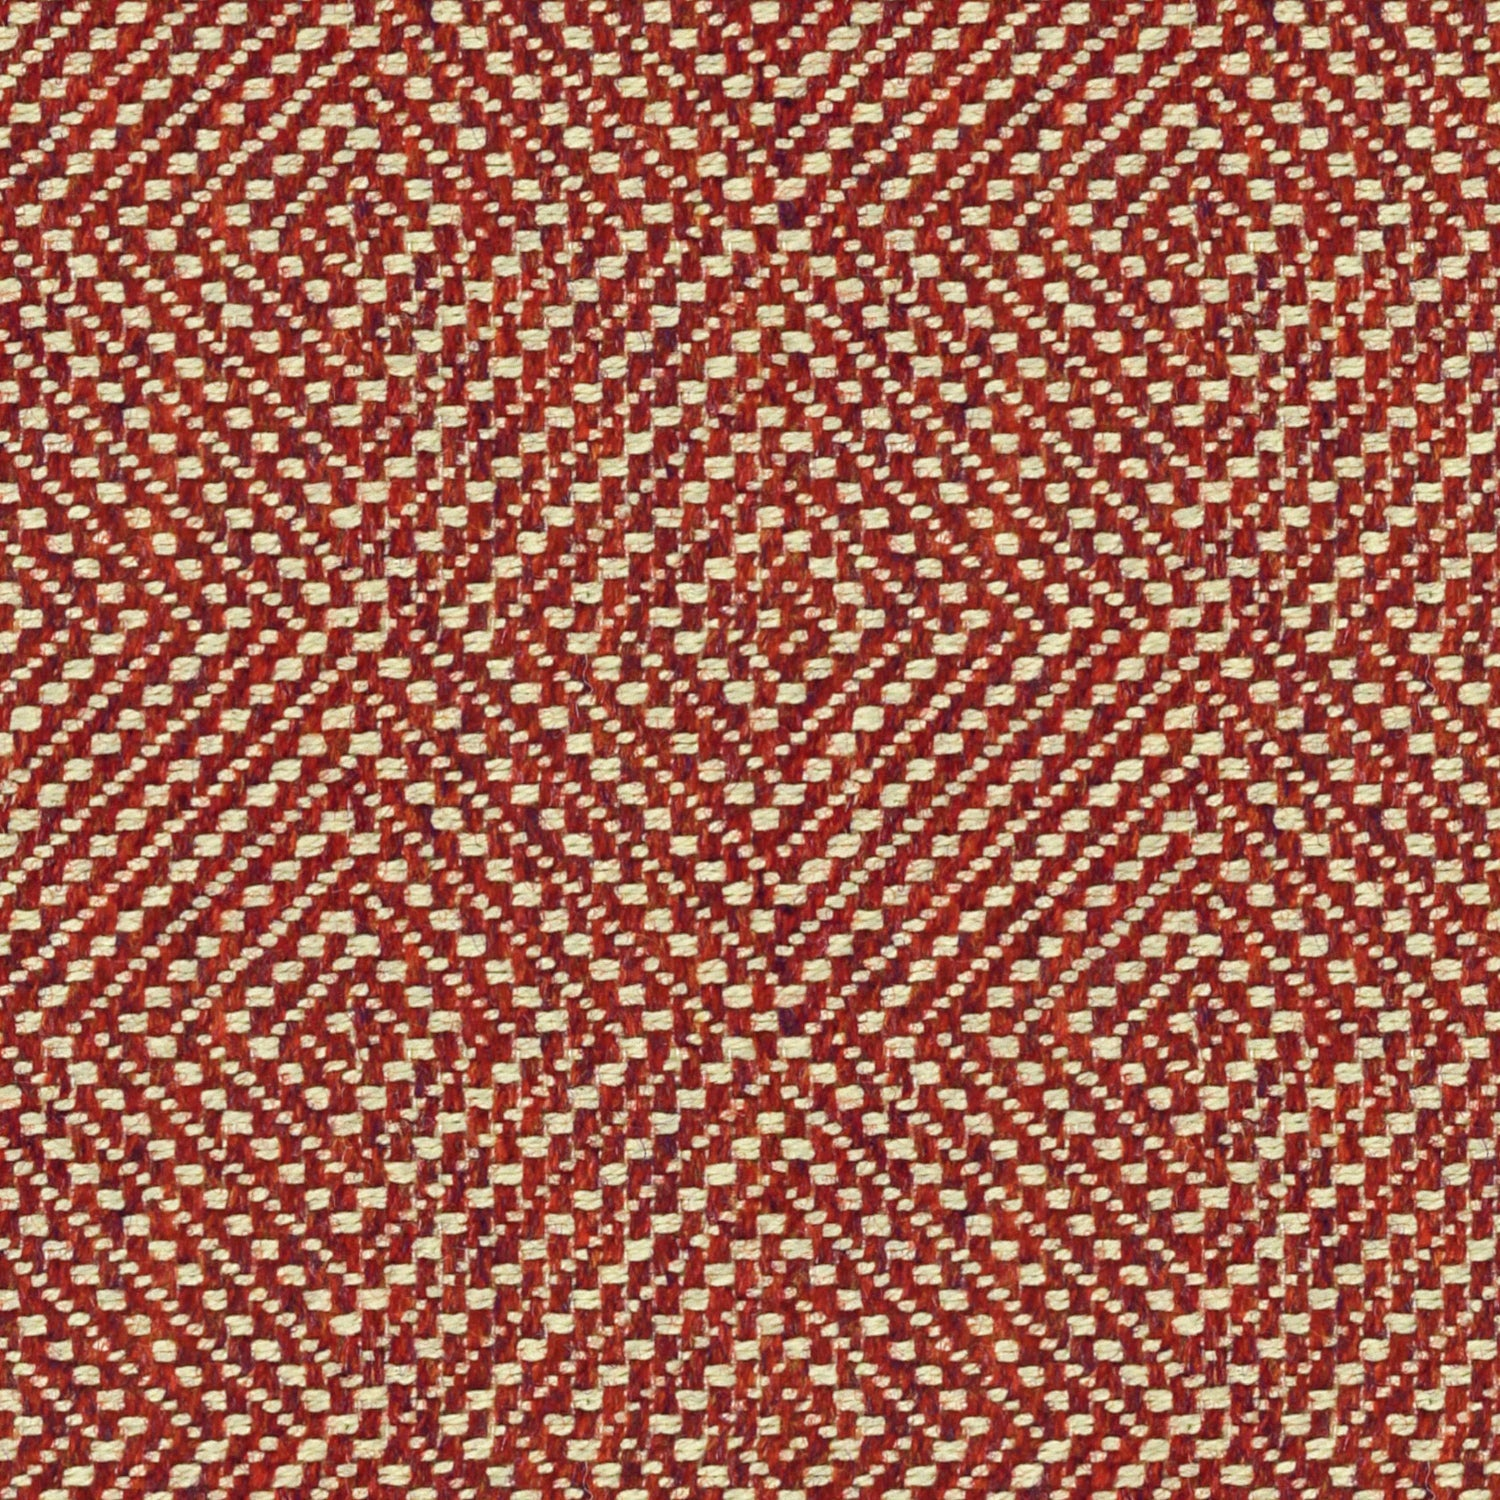 Raspberry red fabric suitable for curtains and upholstery with a light neutral woven geometric design